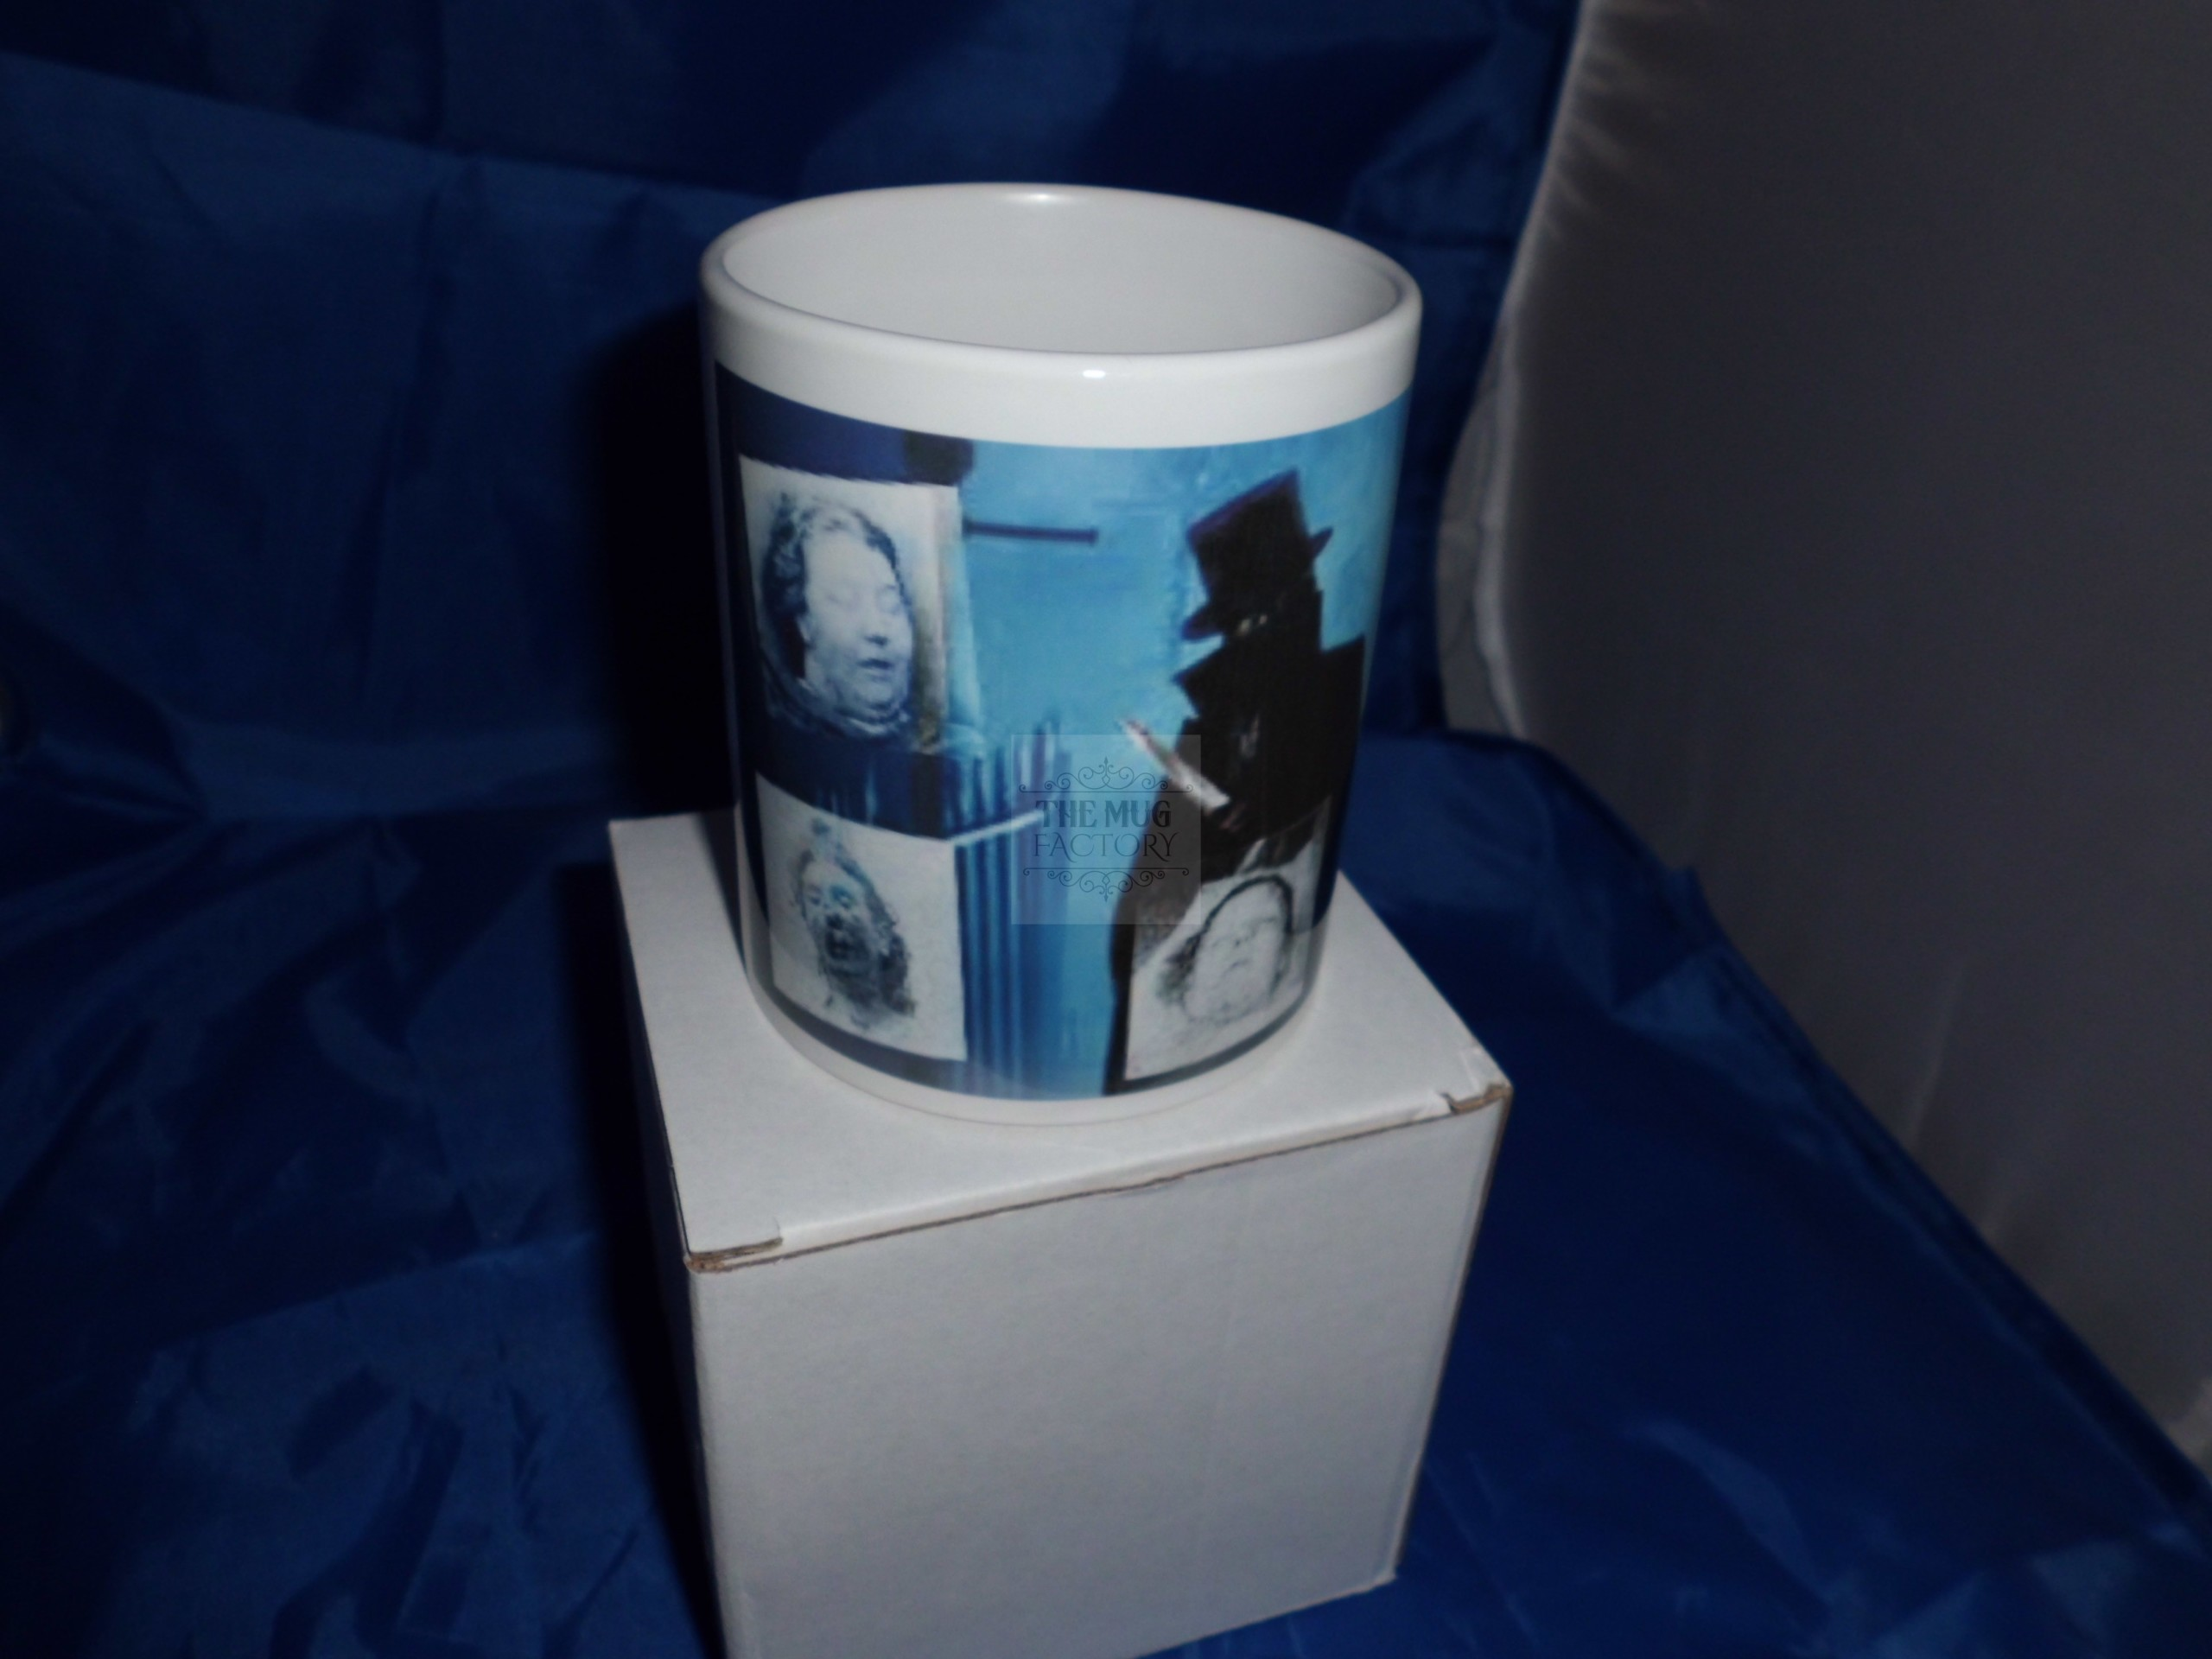 Ripper victims personalised mug